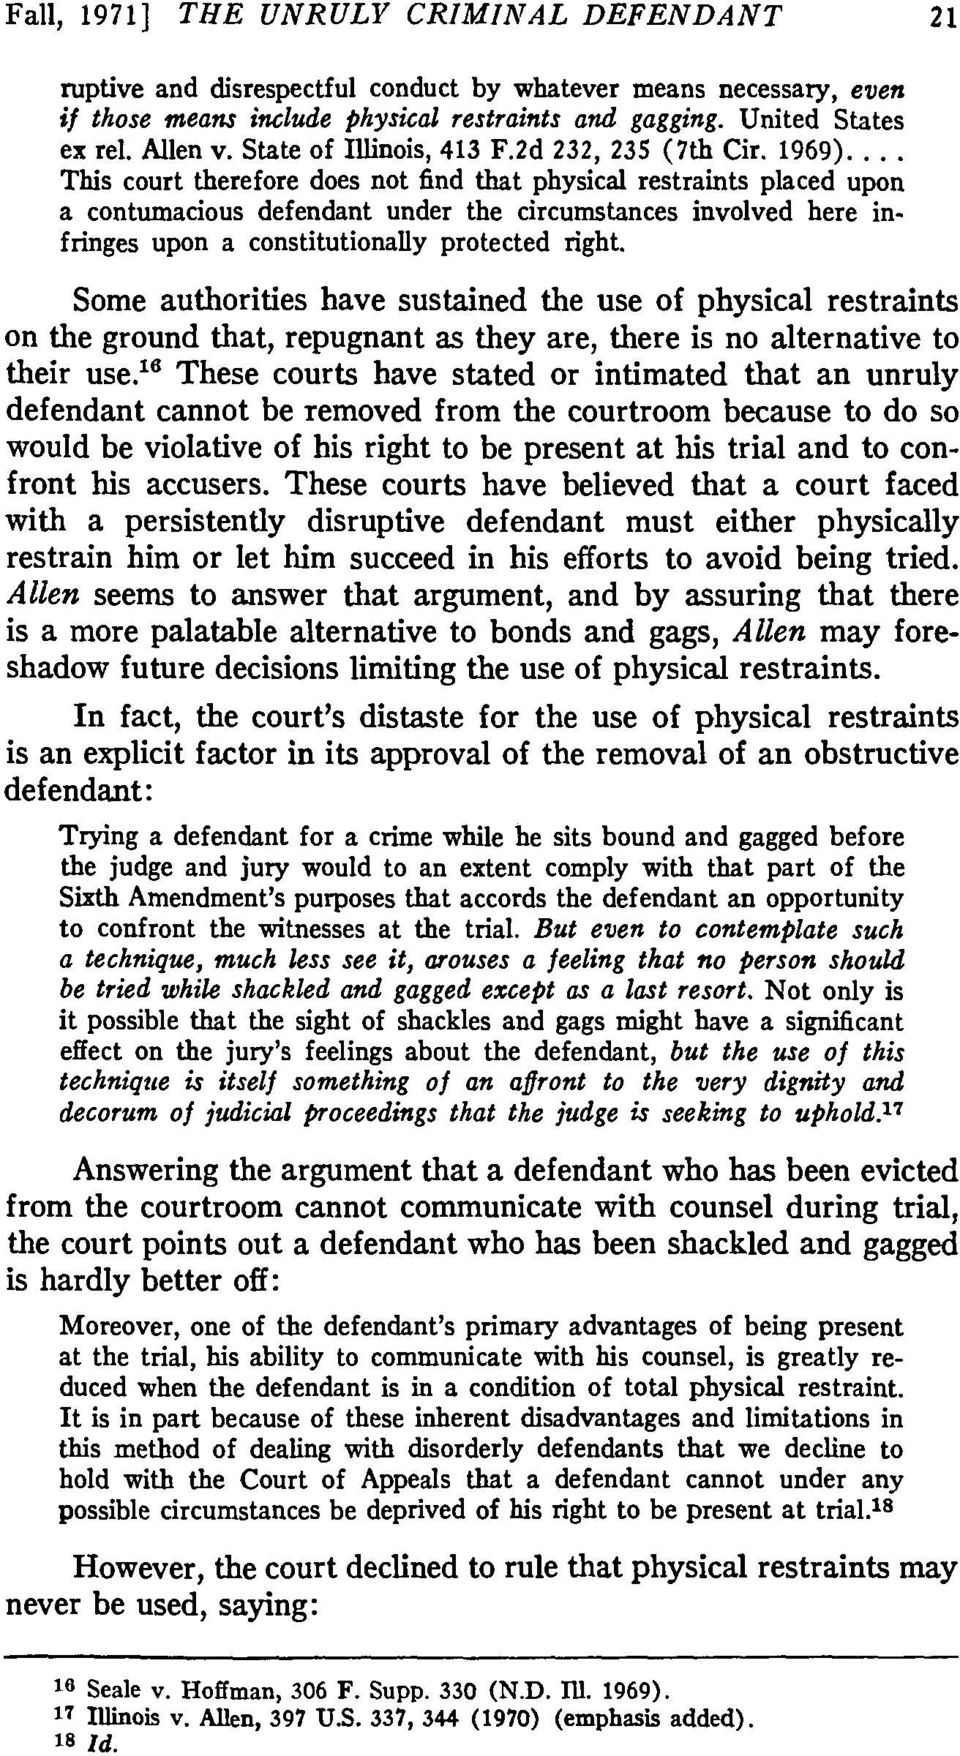 .. This court therefore does not find that physical restraints placed upon a contumacious defendant under the circumstances involved here infringes upon a constitutionally protected right.